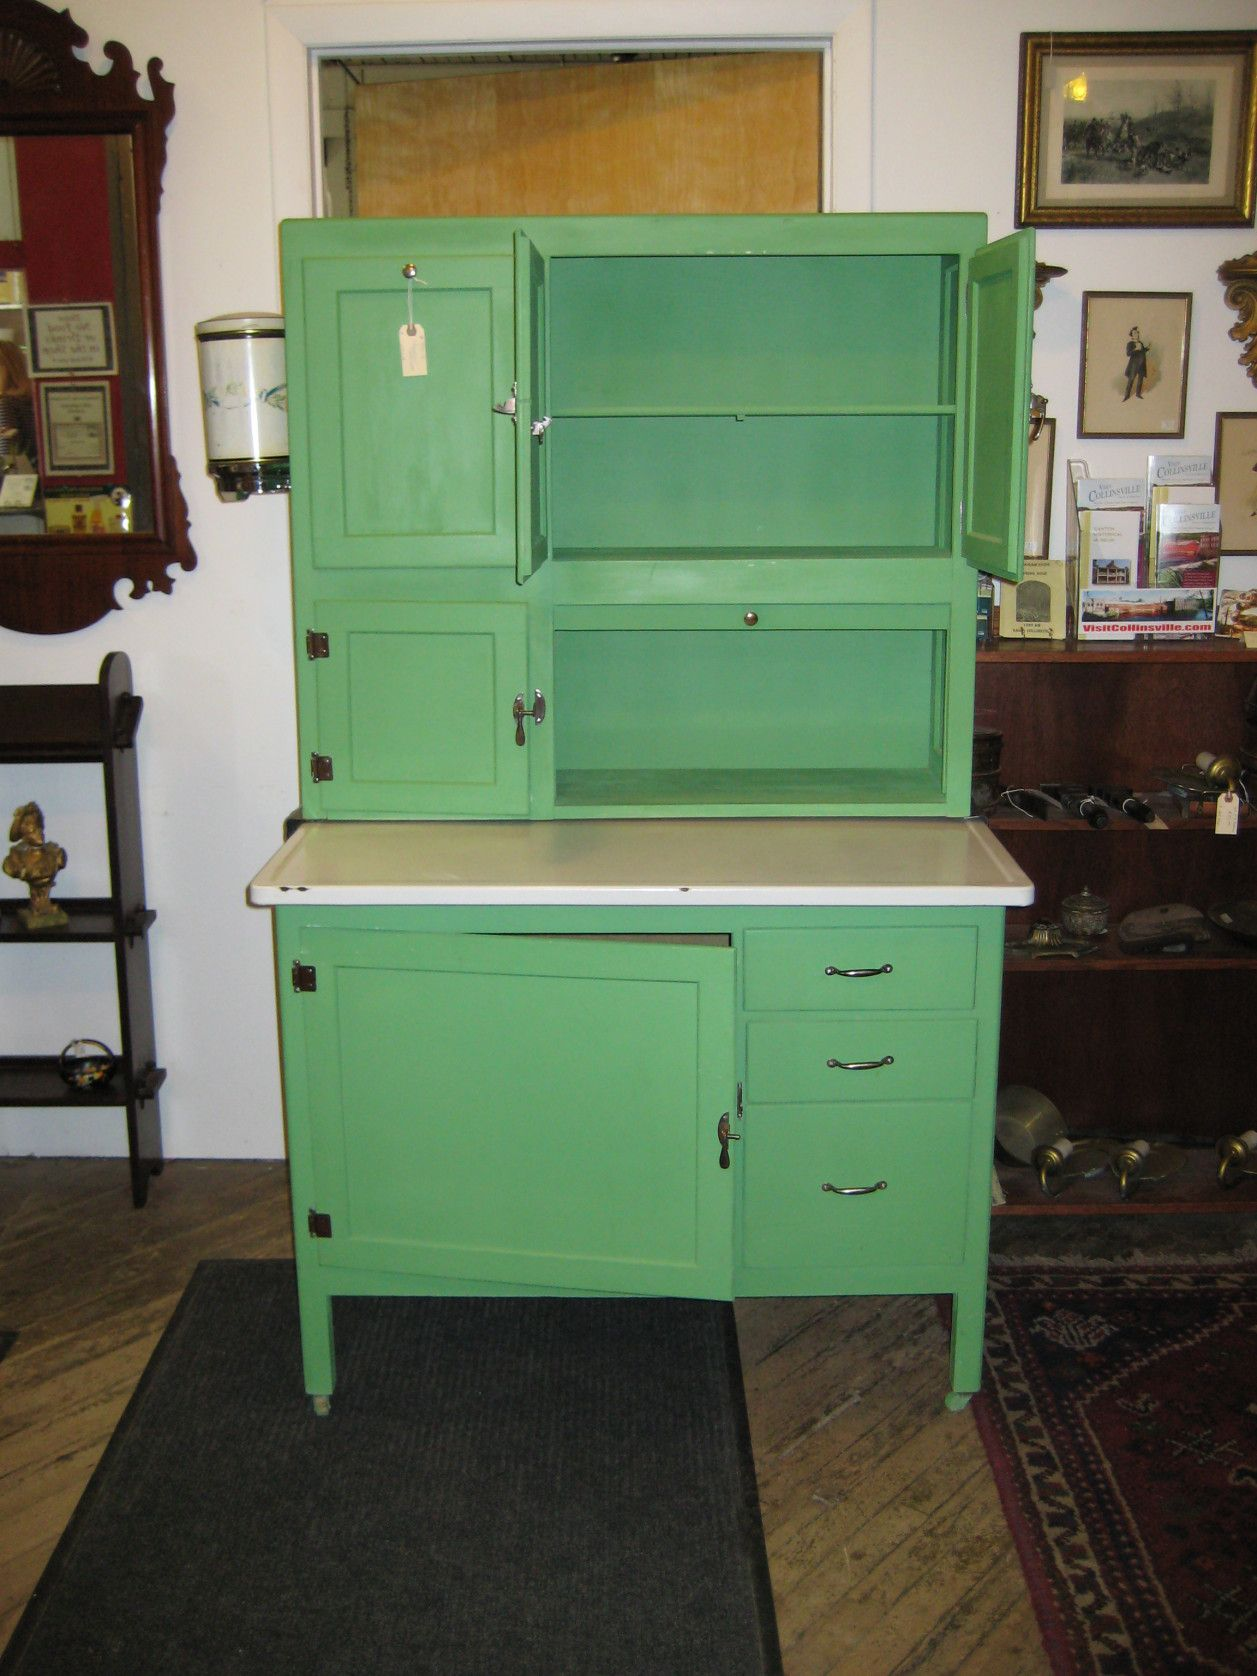 20 1950s Kitchen Cabinets For Sale Corner Kitchen Cupboard Ideas Check More At Http Www Planetgr Vintage Kitchen Cabinets Hoosier Cabinets Hoosier Cabinet